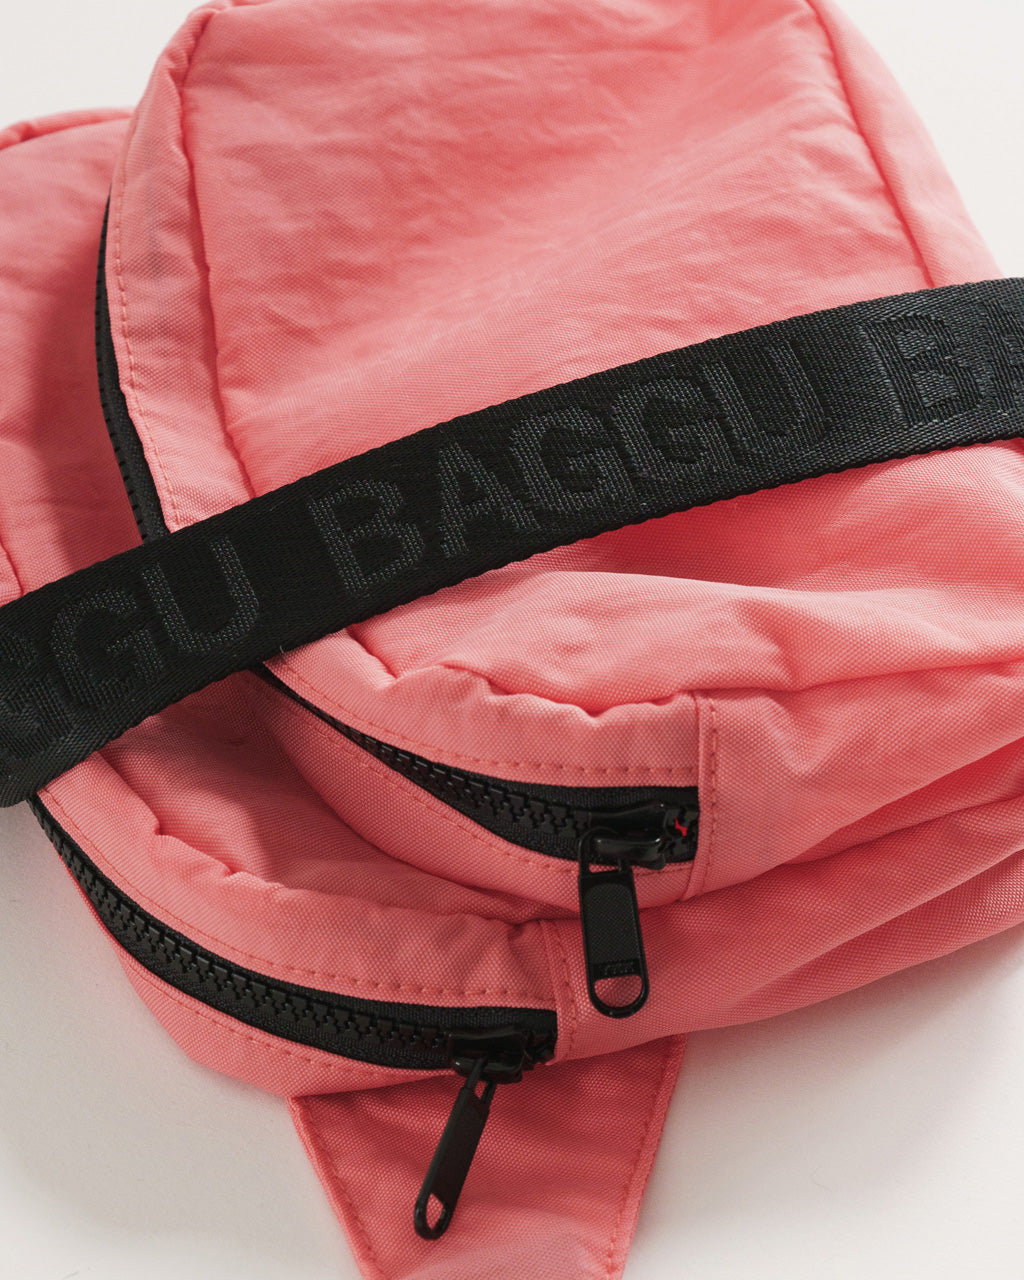 detail shot of nylon fanny pack in watermelon pink with black strap